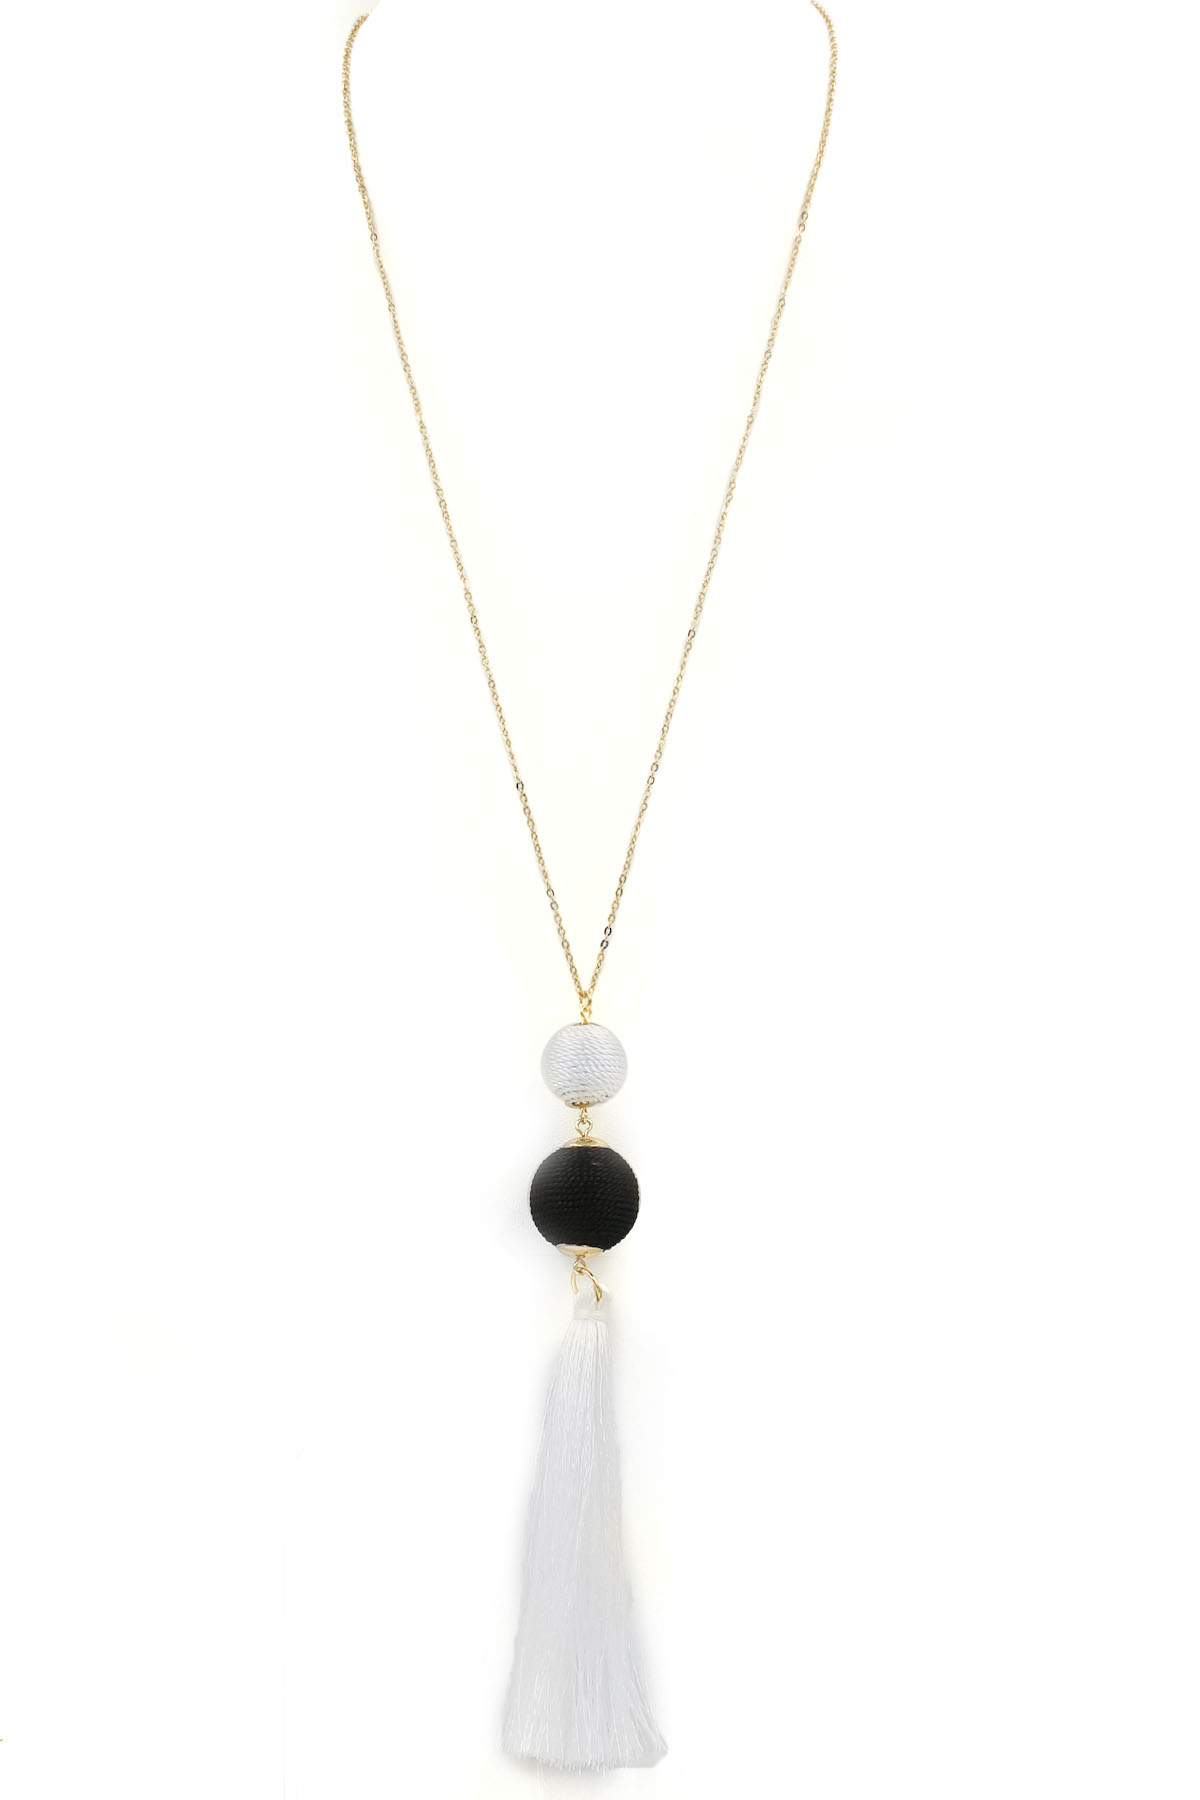 Cotton Ball/Tassel Long Necklace - Necklaces